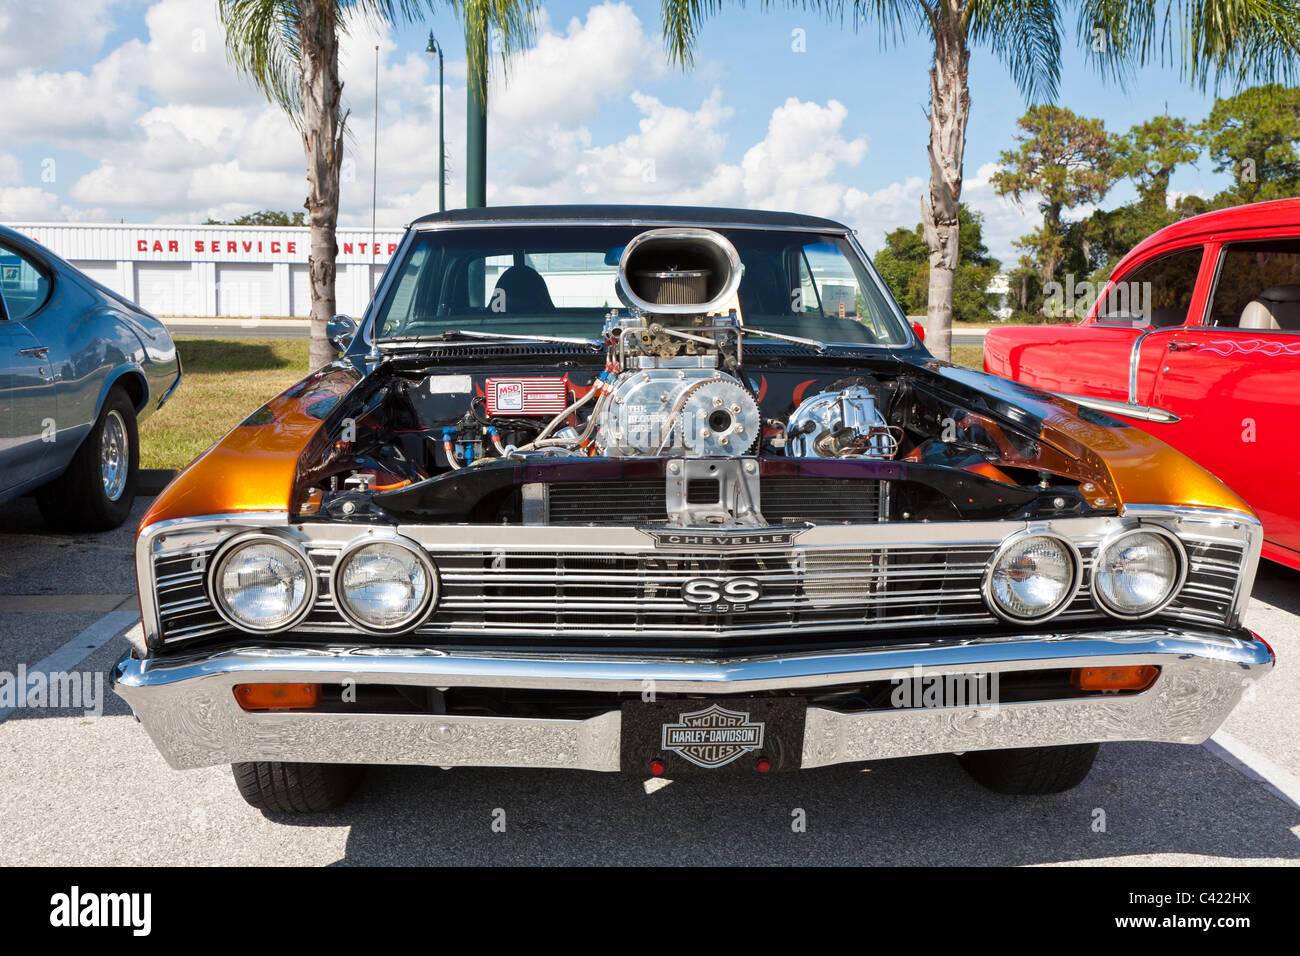 Chevelle Ss Stock Photos & Chevelle Ss Stock Images - Alamy